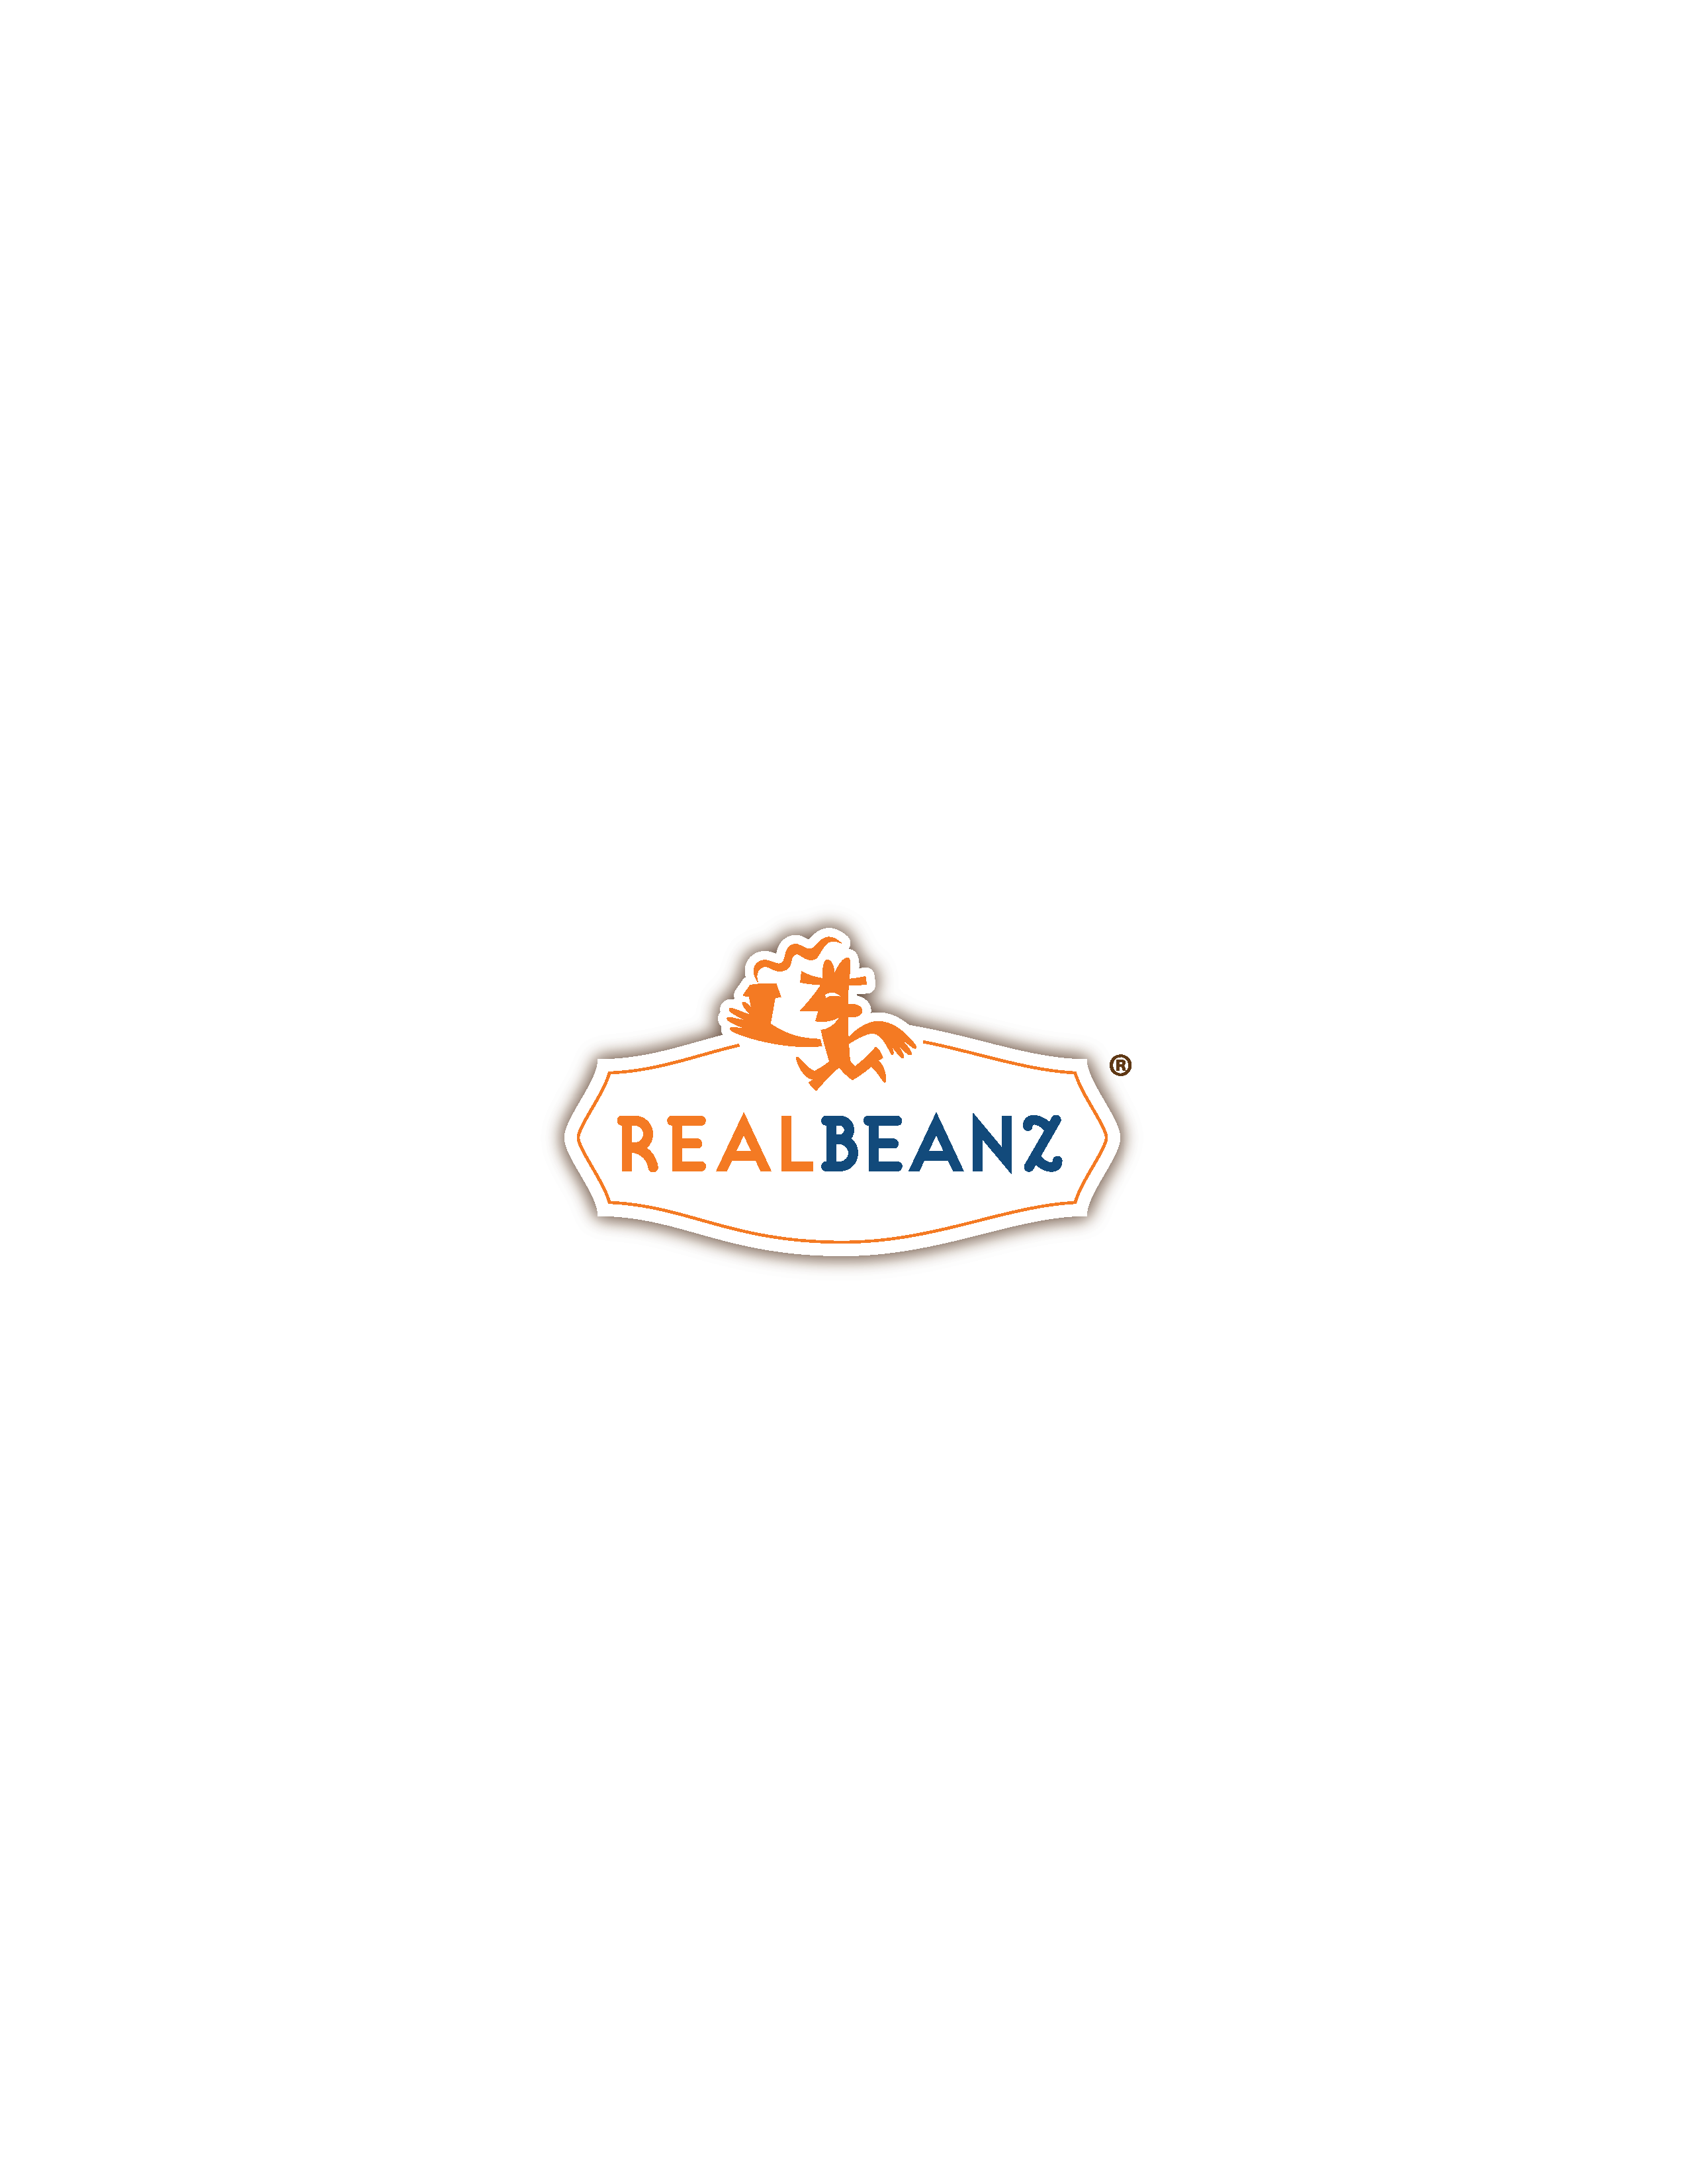 The Realbeanz LLC,